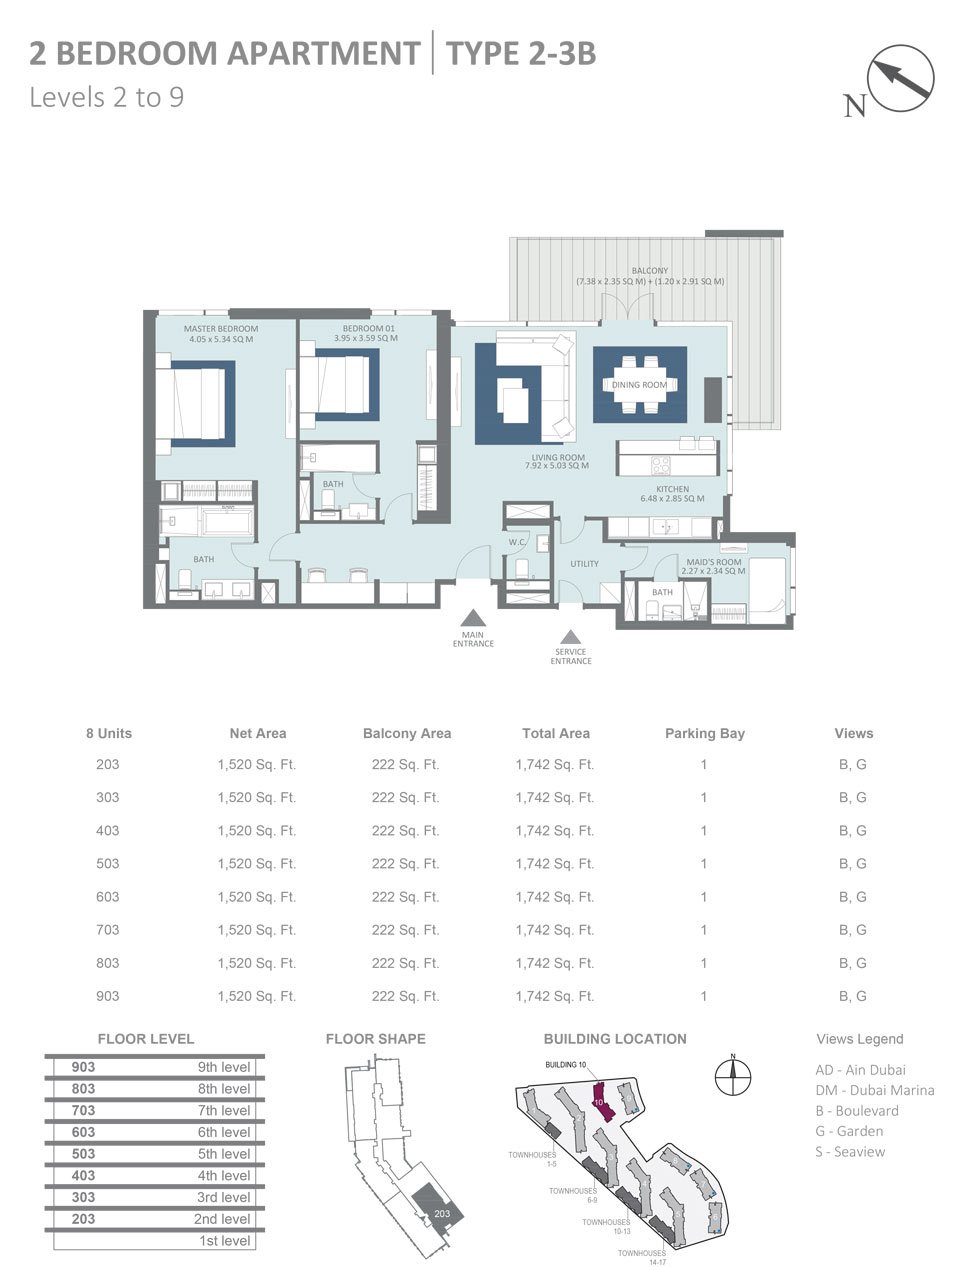 Building 10 - 2 Bedroom Apartment Type 2, 3B, Level 2 - 9, Size 1742  sq. ft.